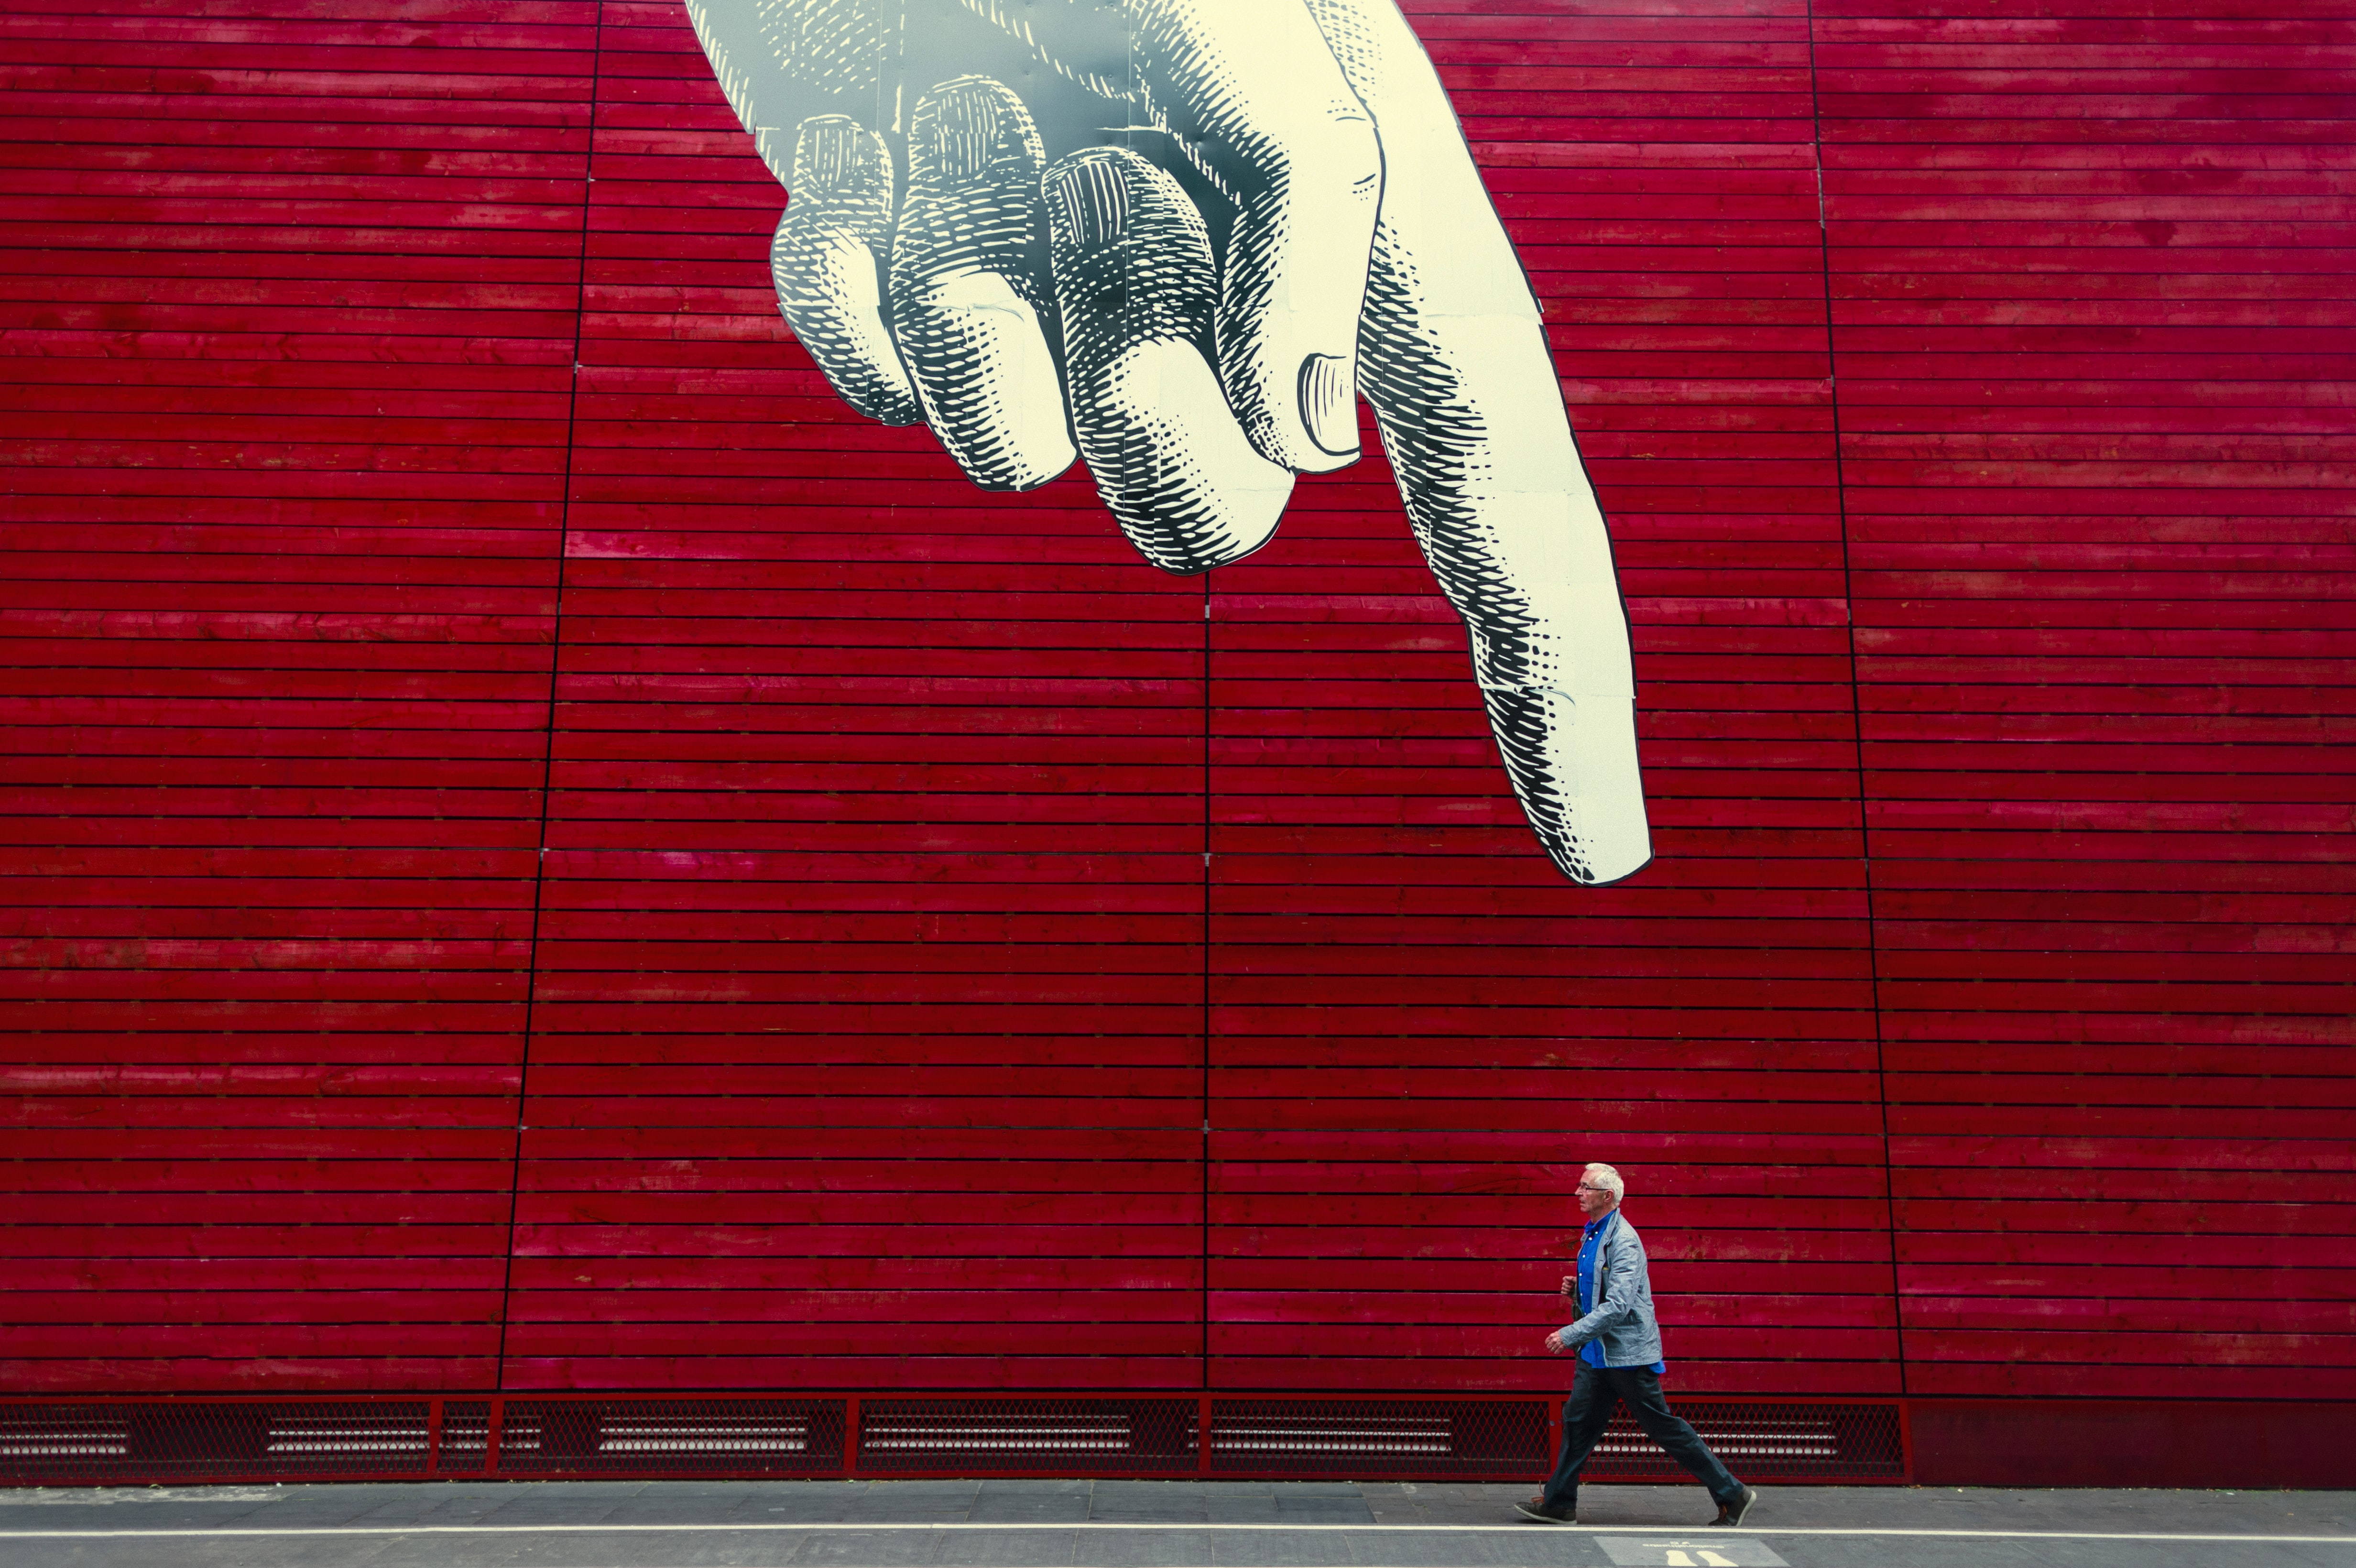 A person walking by a wall painting of a realistic hand with its index finger pointing down.